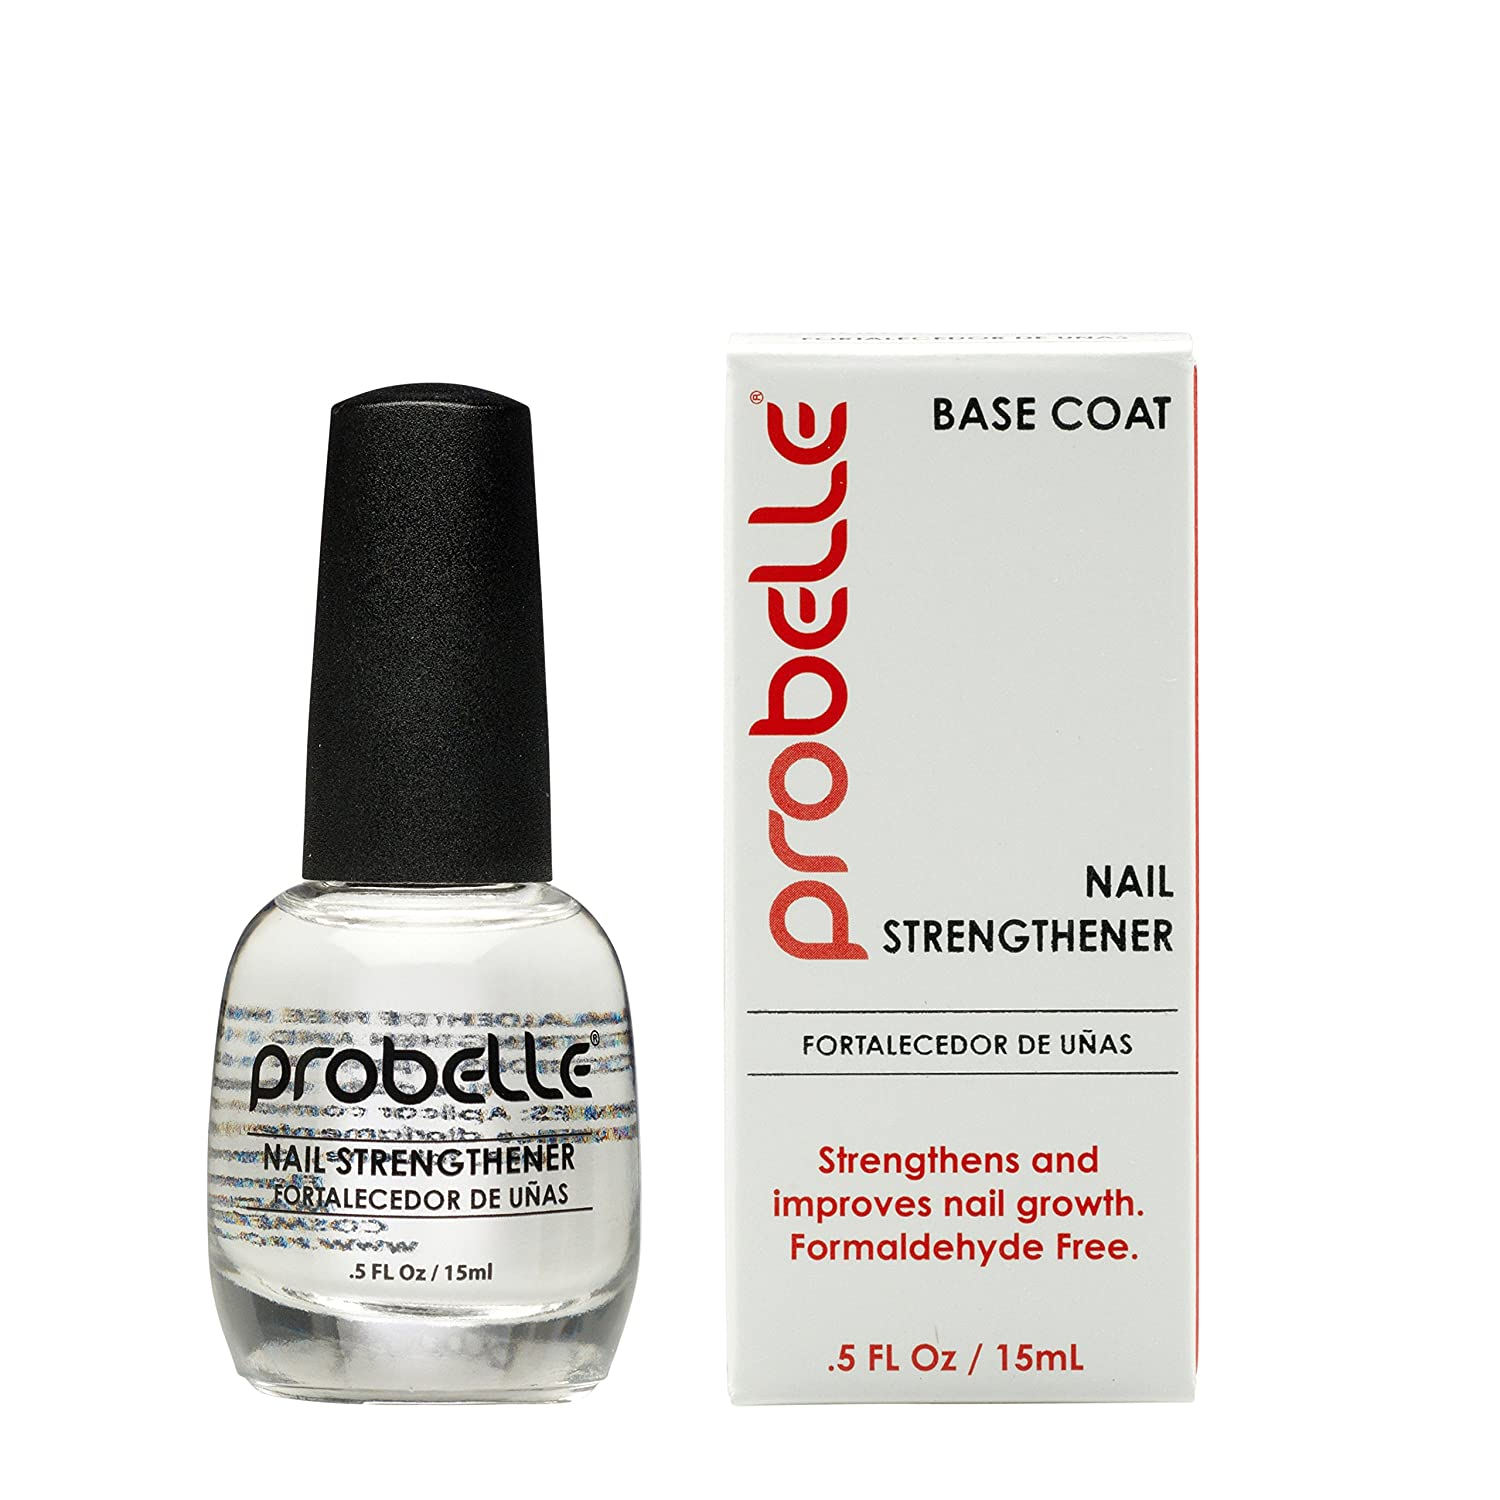 Amazon.com: Probelle Nail Strengthener Formaldehyde Free, Fast Dry ...